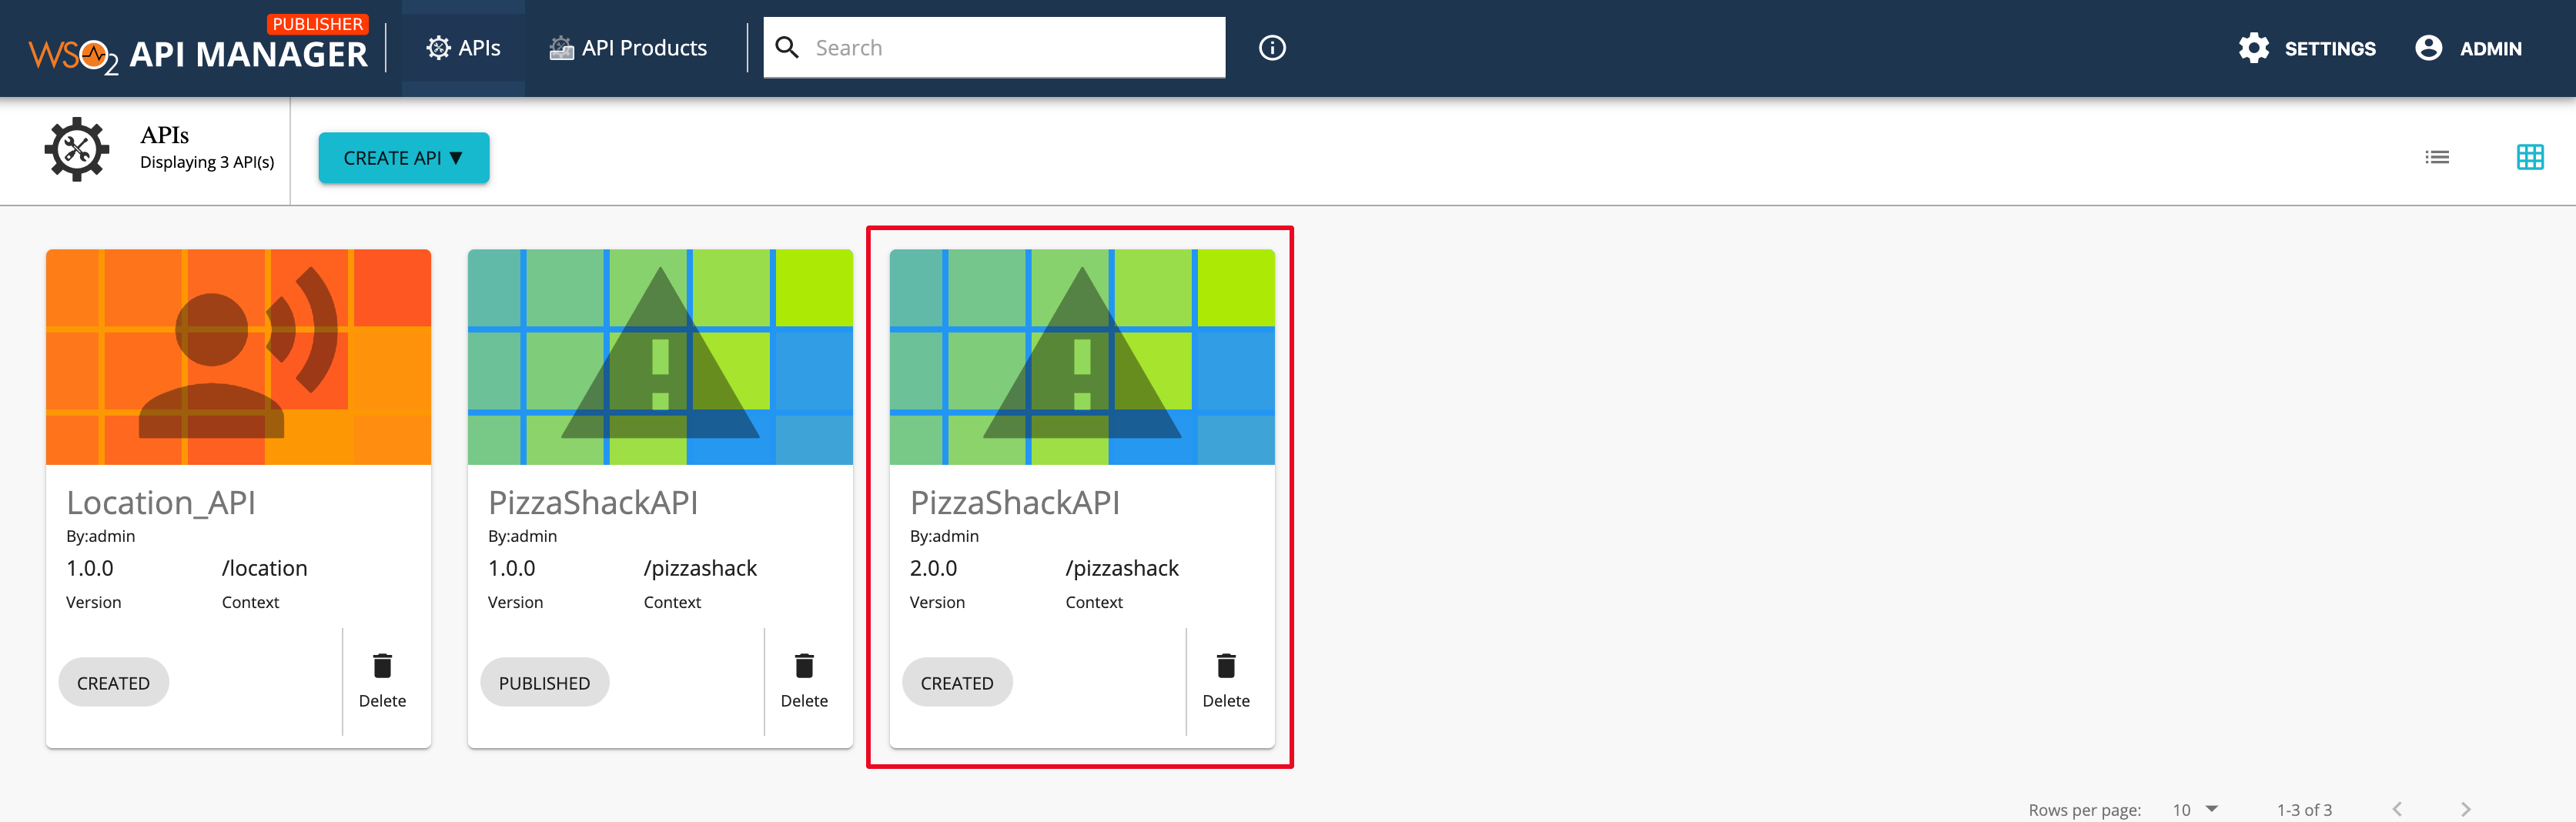 PizzaShack API in the Publisher